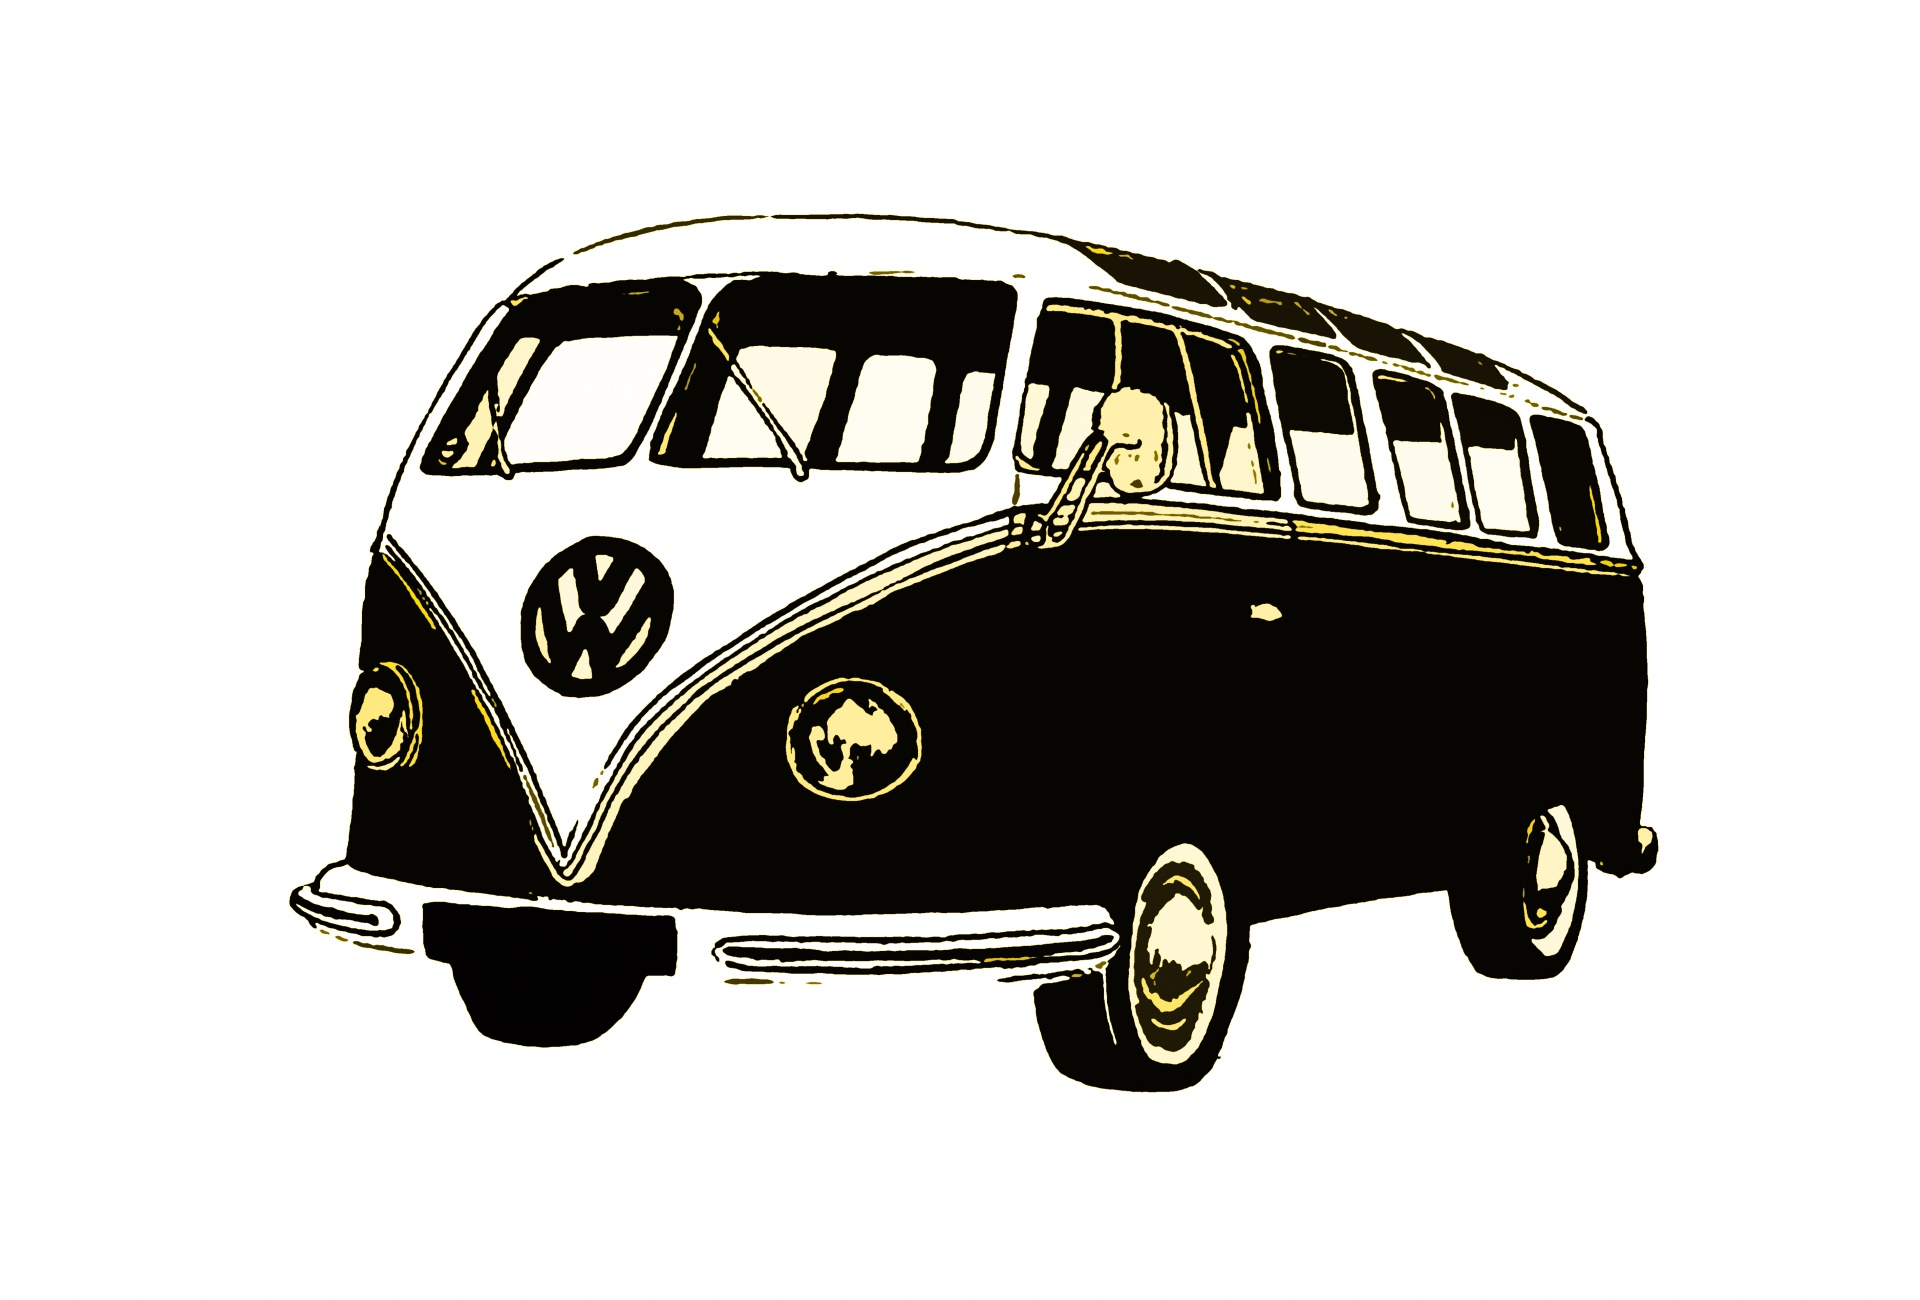 Old Car Wallpaper Download Vw Retro Bus Free Stock Photo Public Domain Pictures